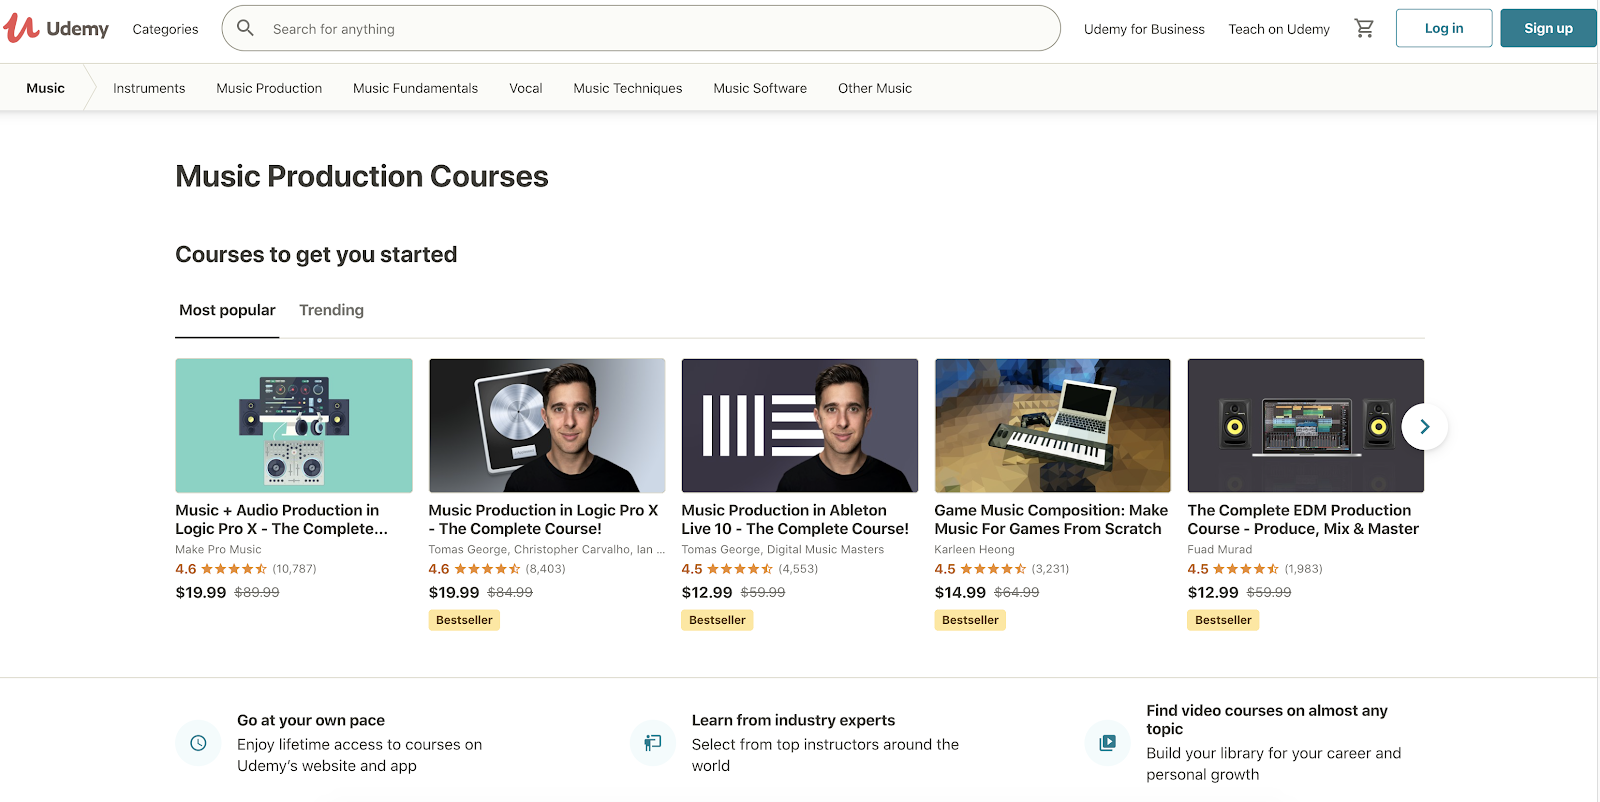 Udemy music production courses sorted by most popular on their homepage.